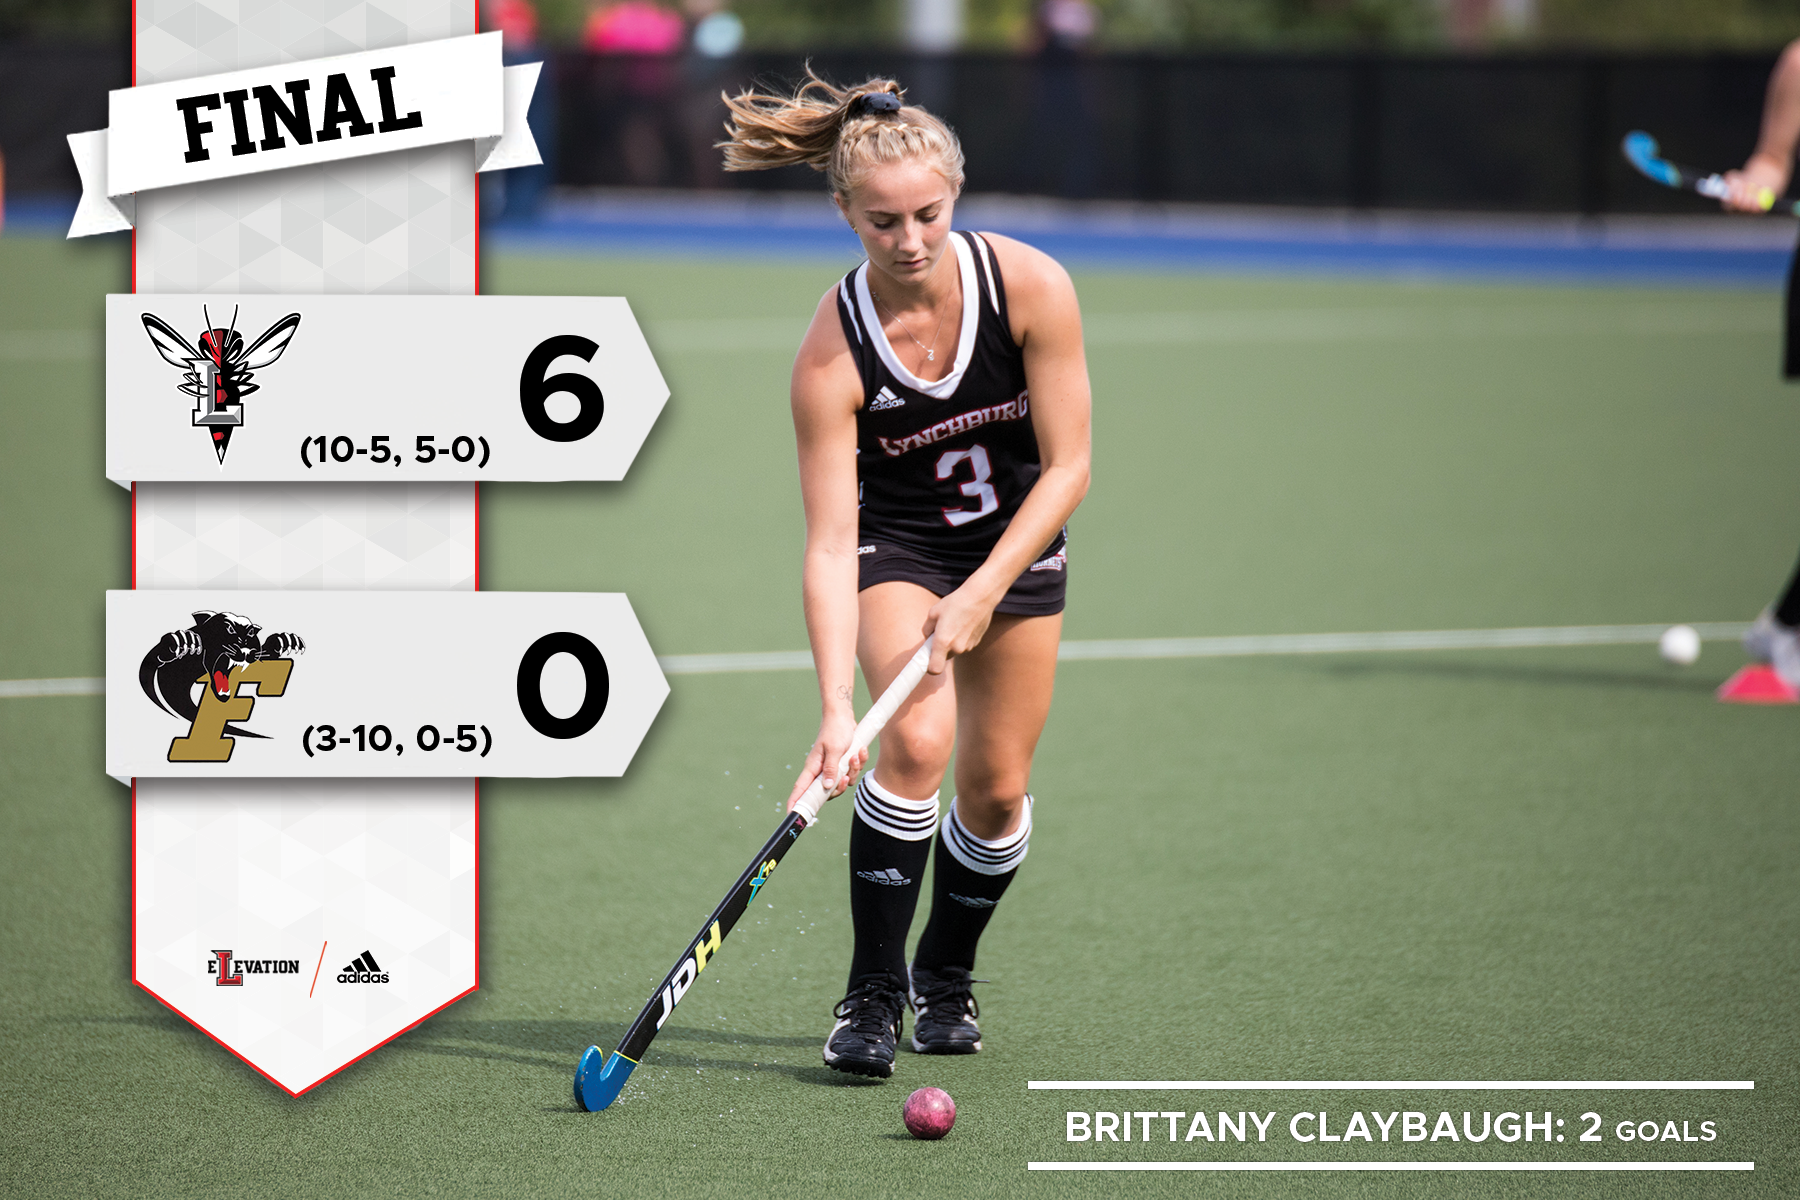 Brittany Claybaugh dribbling in a field hockey game. Graphic showing 6-0 final score.